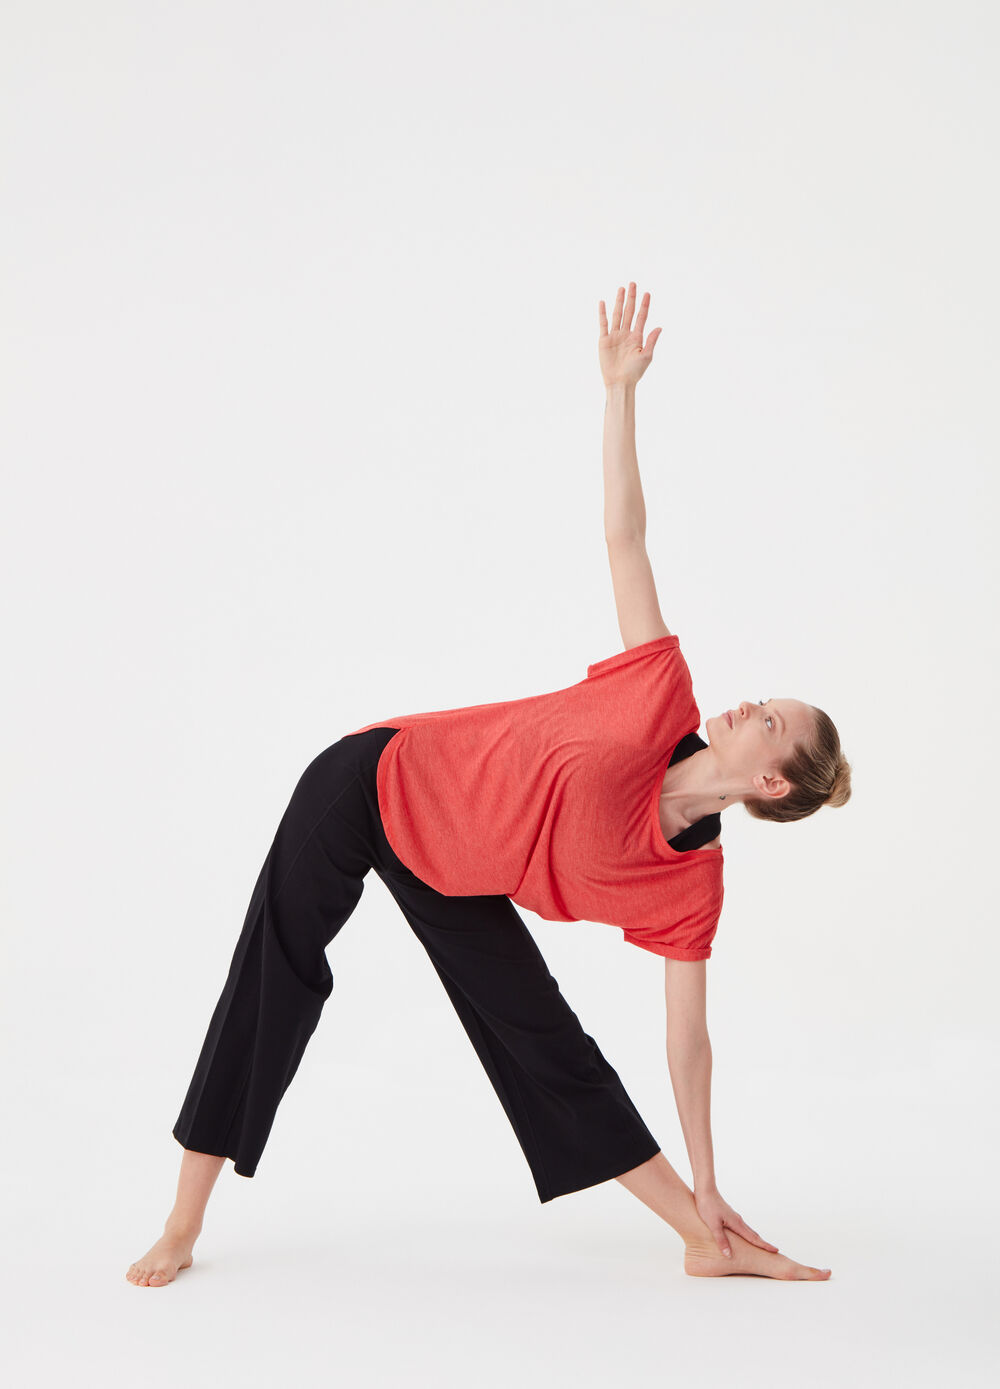 T-shirt with sleeves with turn-ups and splits